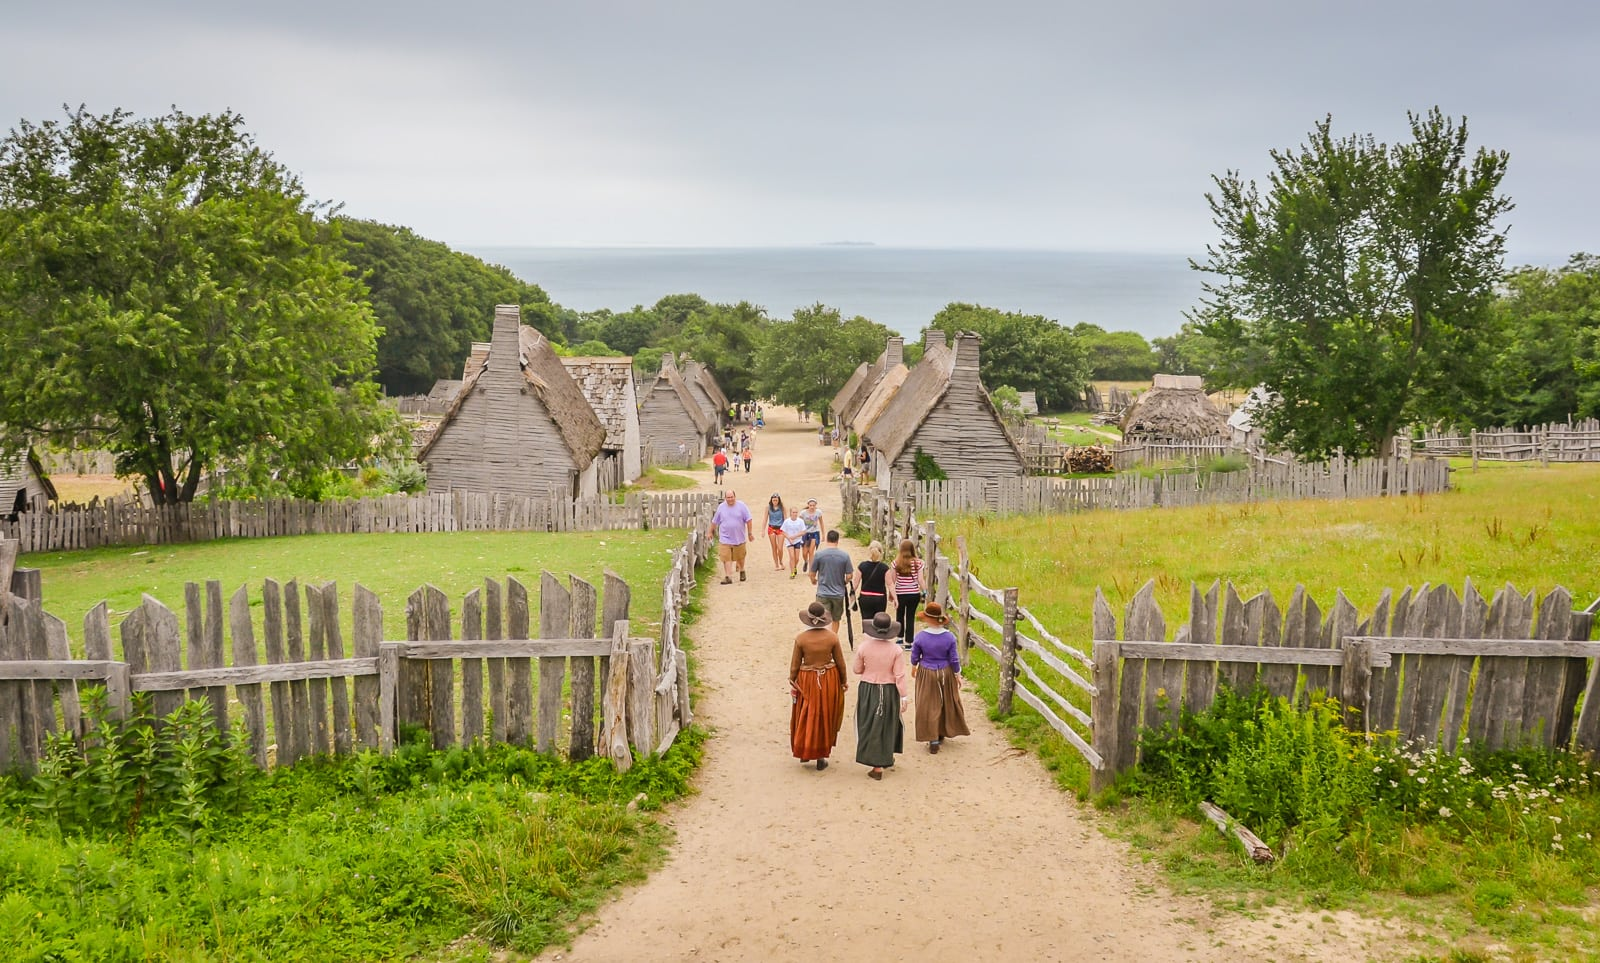 Costumed historic reenactors walk path at Plimoth Plantation.